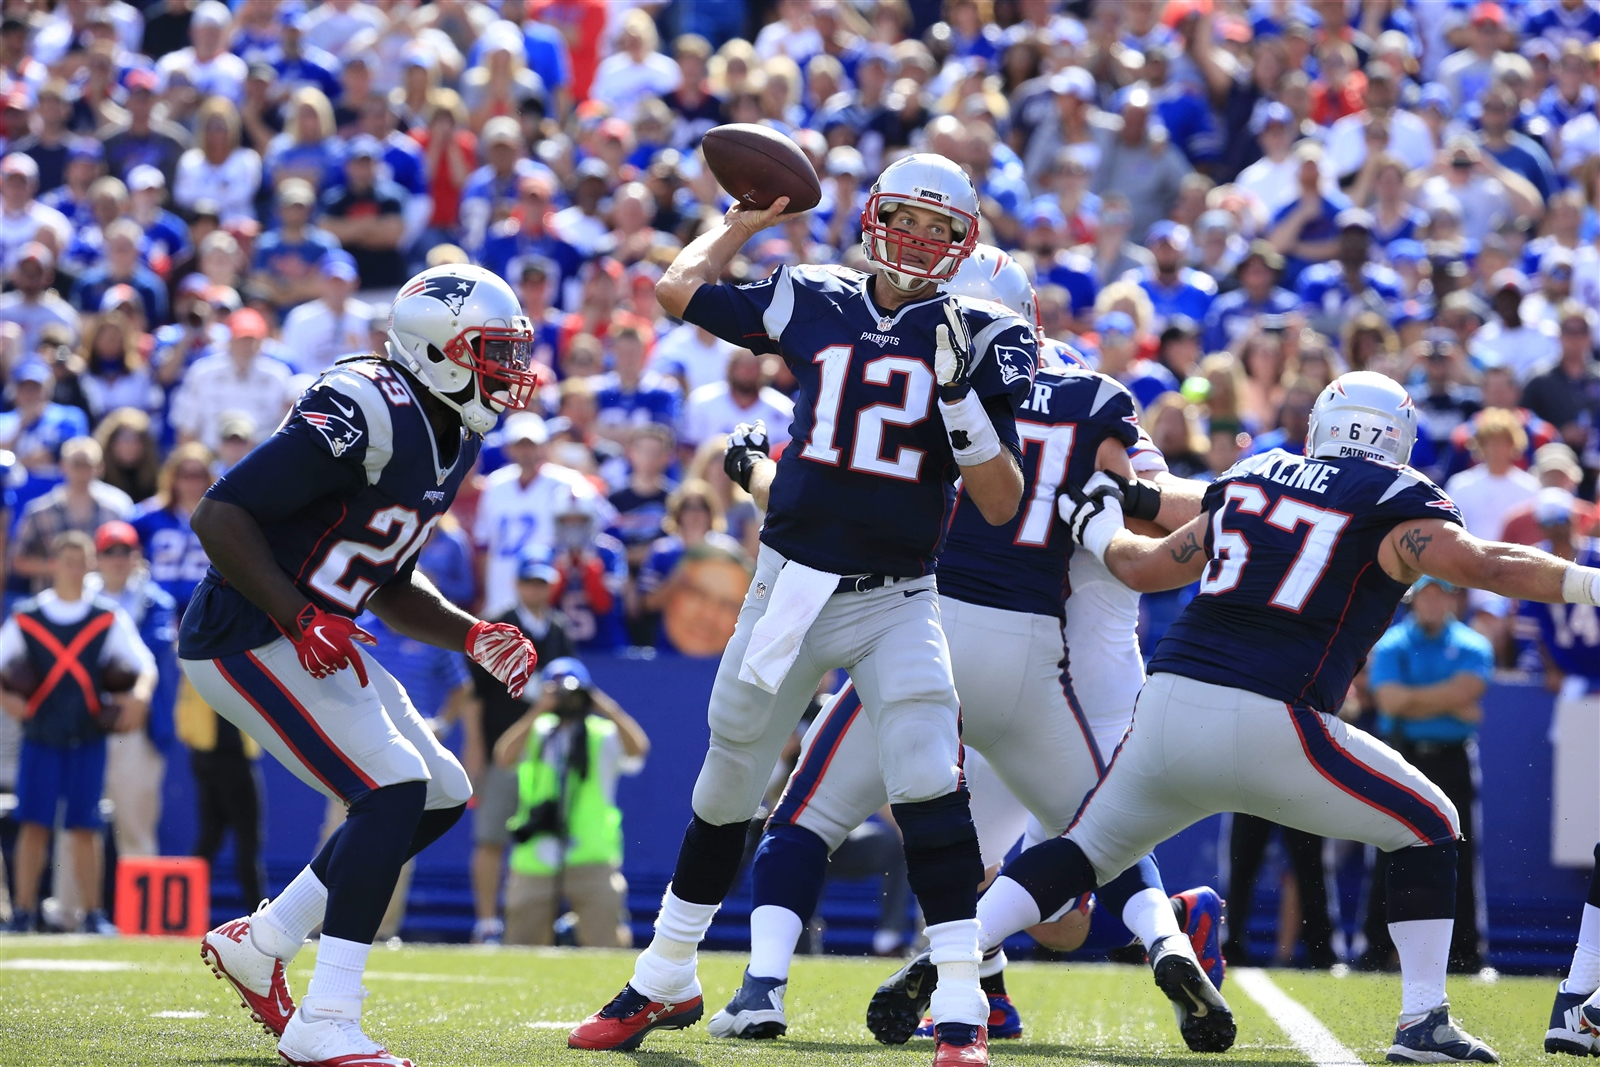 Tom Brady recorded the highest passing yardage against Buffalo in Bills history in the teams' first meeting this year. (Buffalo News)